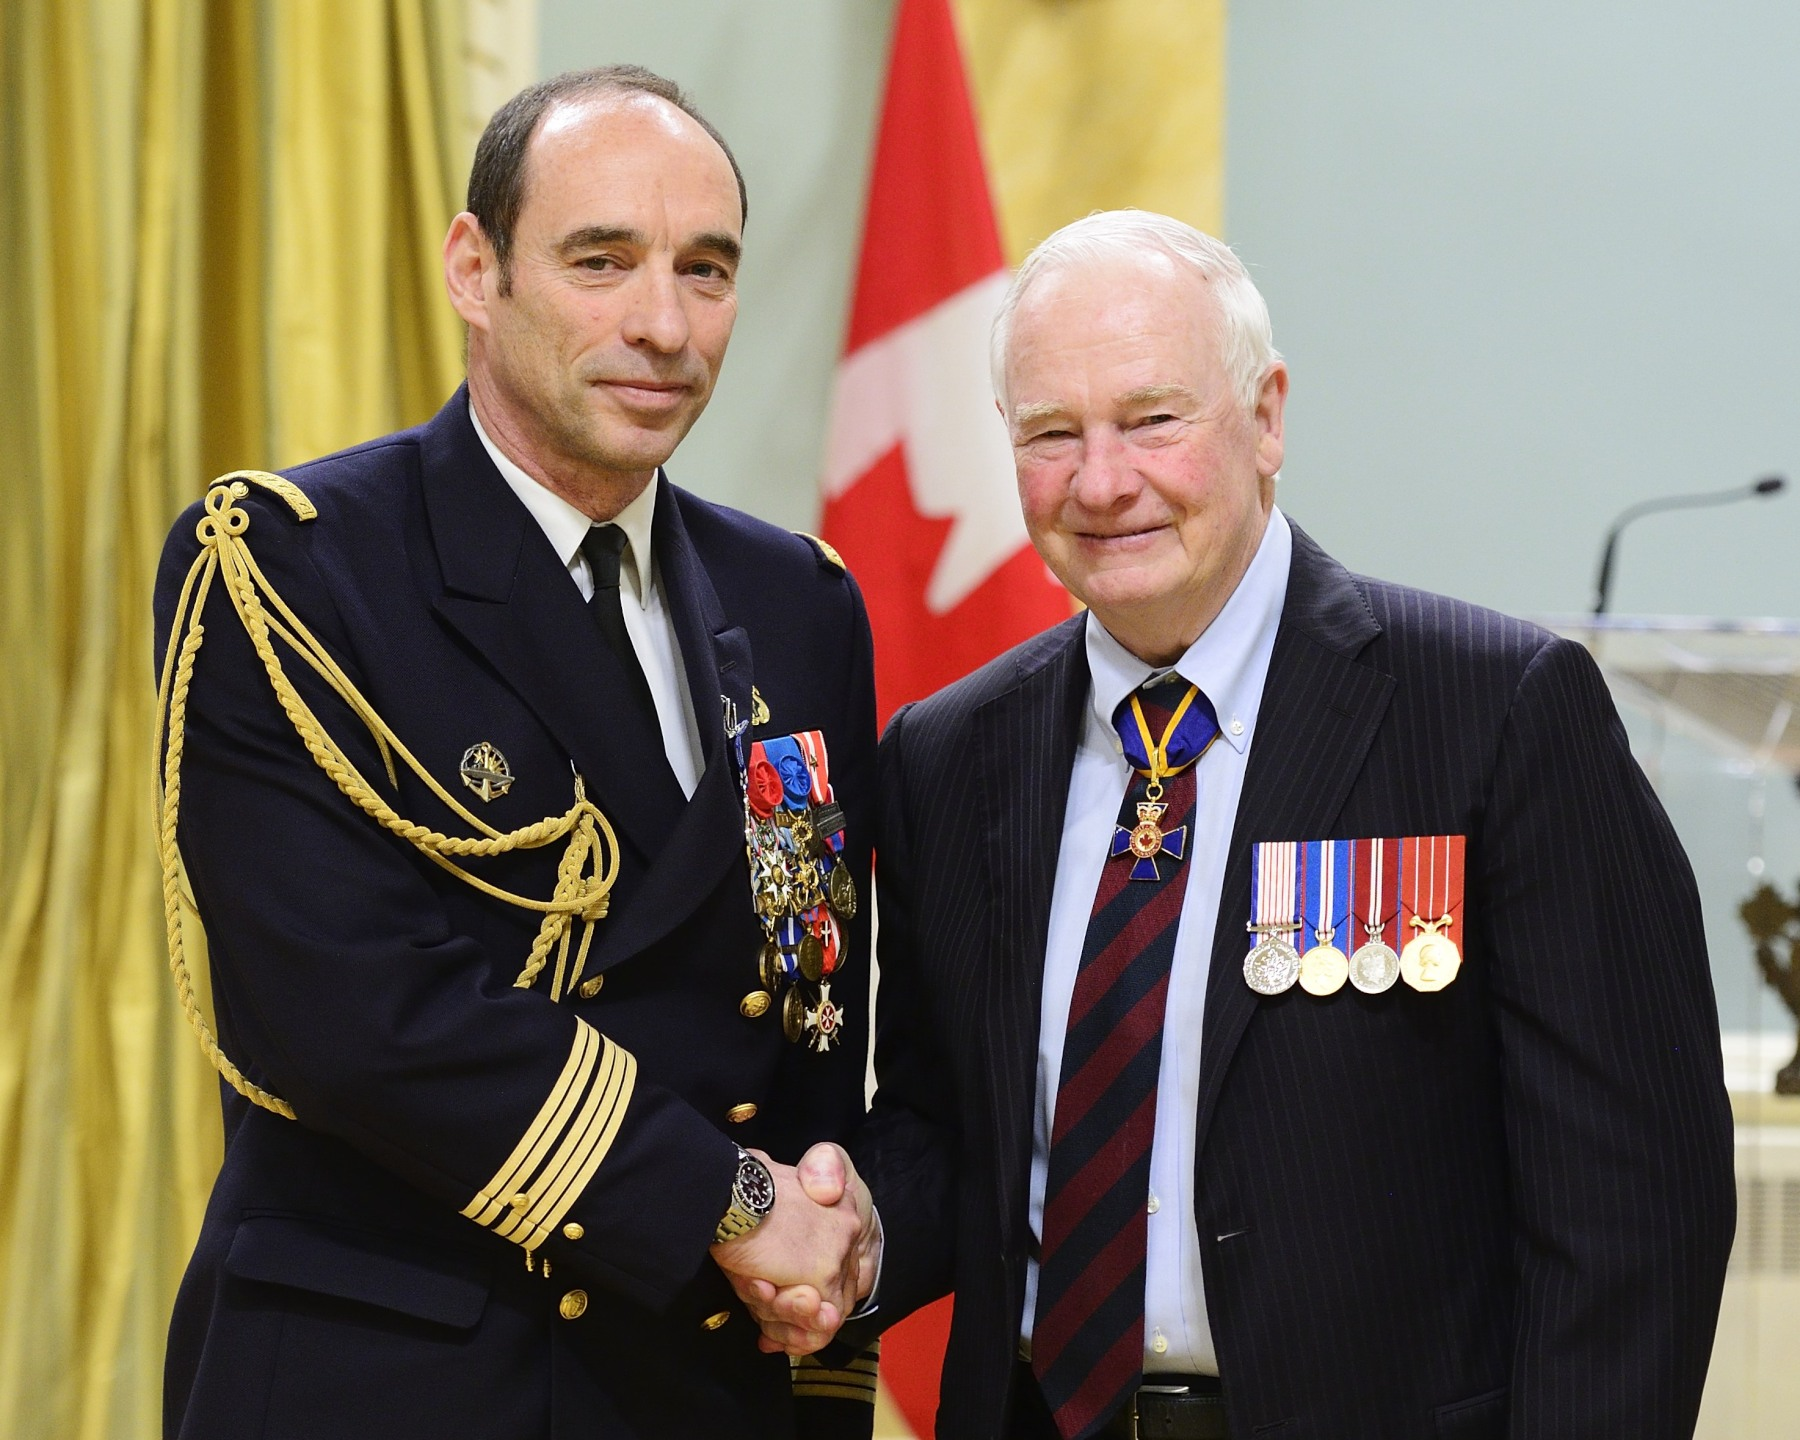 Captain(N) Christophe Antoine Marie Balducchi, M.S.M. (French Navy) demonstrated outstanding dedication and professionalism while serving as defence attaché at the French Embassy in Ottawa, from 2013 to 2015. He played a significant role in recognizing the service and sacrifice of past and present Canadian soldiers by organizing a wide range of commemorative activities that strengthened the ties of friendship between France and Canada. Captain(N) Balducchi's contribution to recognizing our military personnel has brought great honour to Canada.